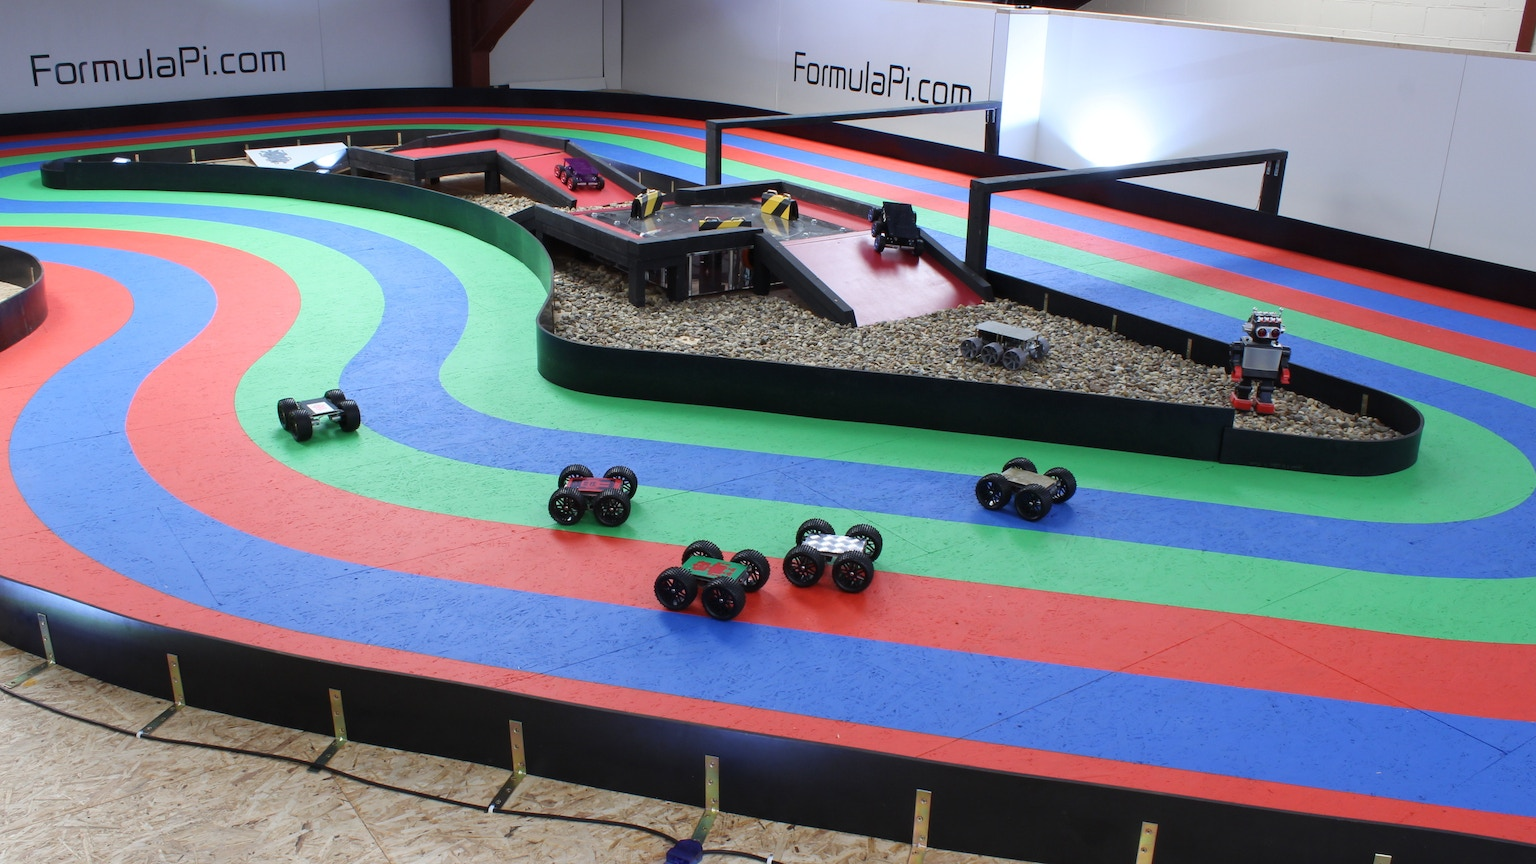 FormulaPi Autonomous Vehicle Racing